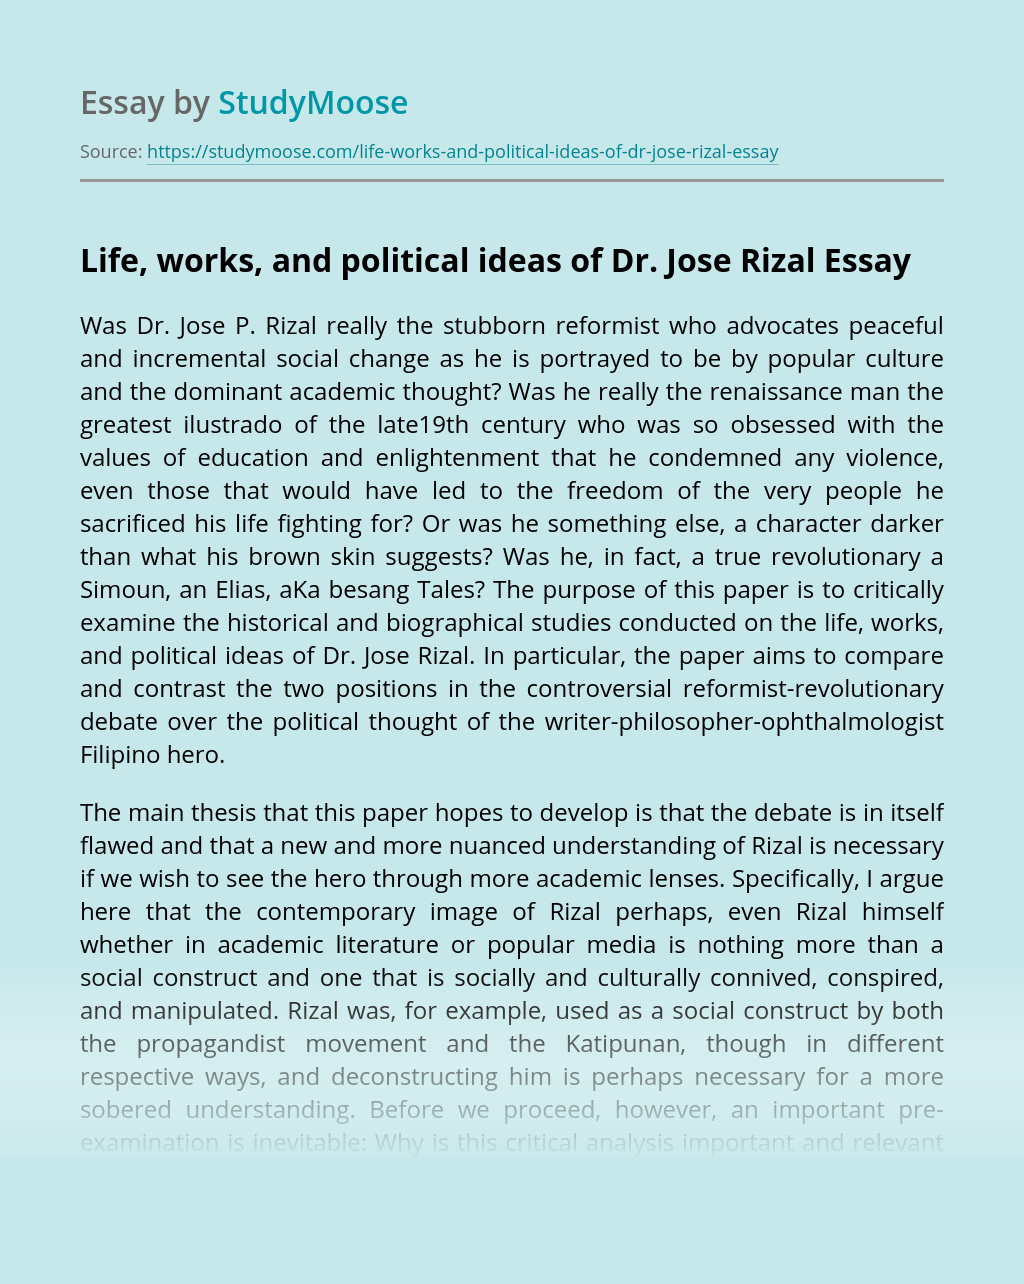 Life, works, and political ideas of Dr. Jose Rizal